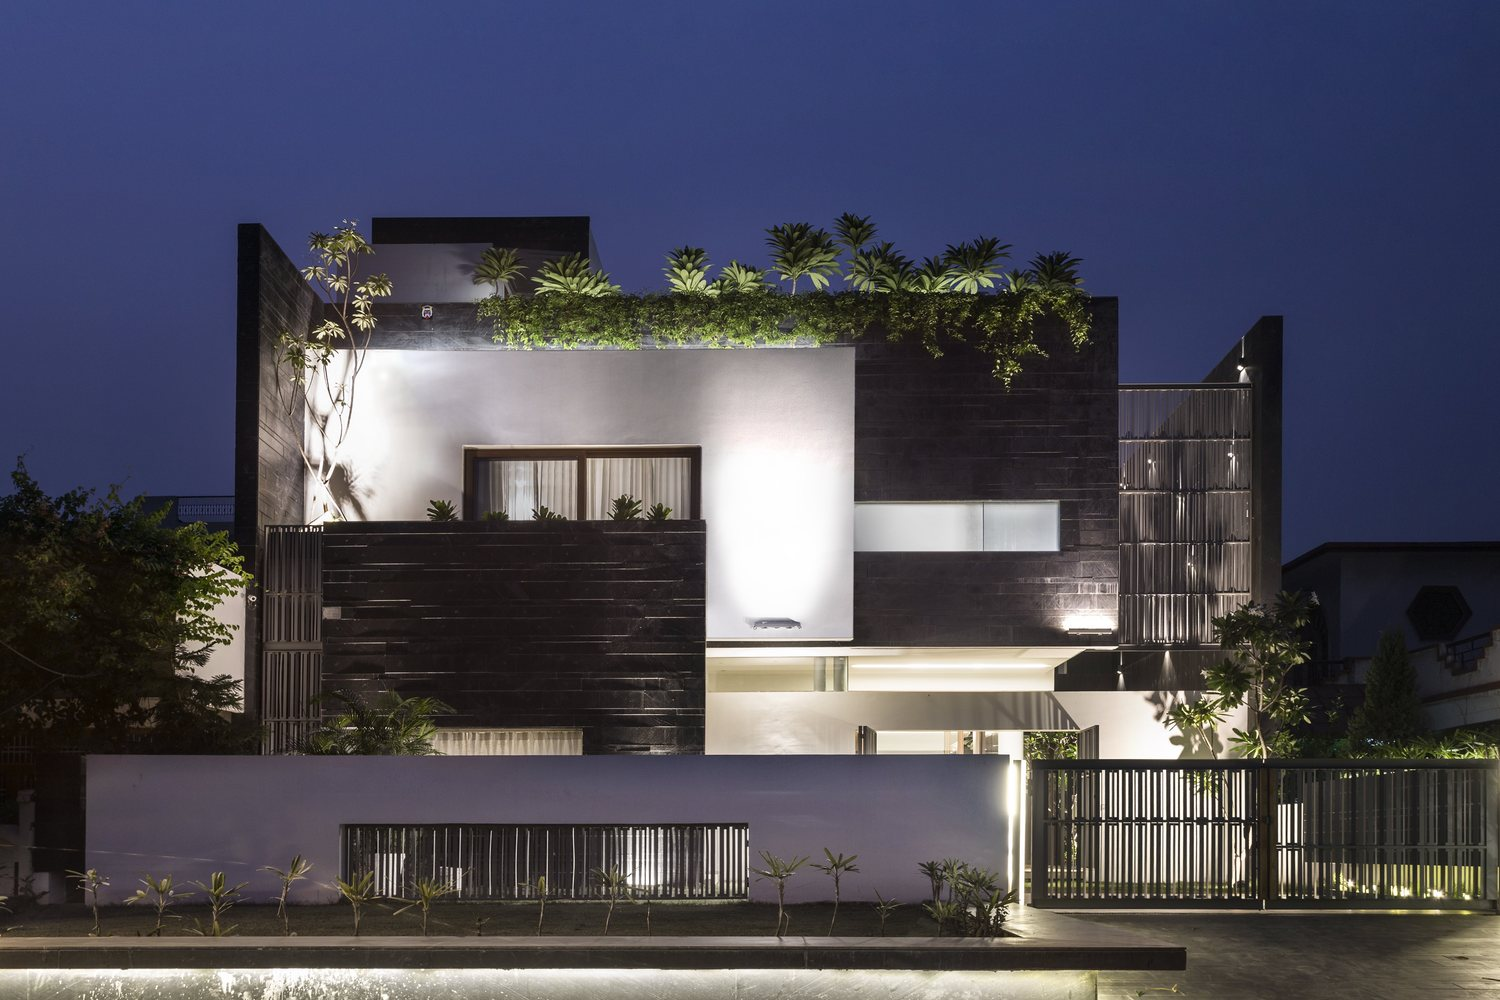 Residence 913 by Charged Voids - Archiscene - Your Daily ...